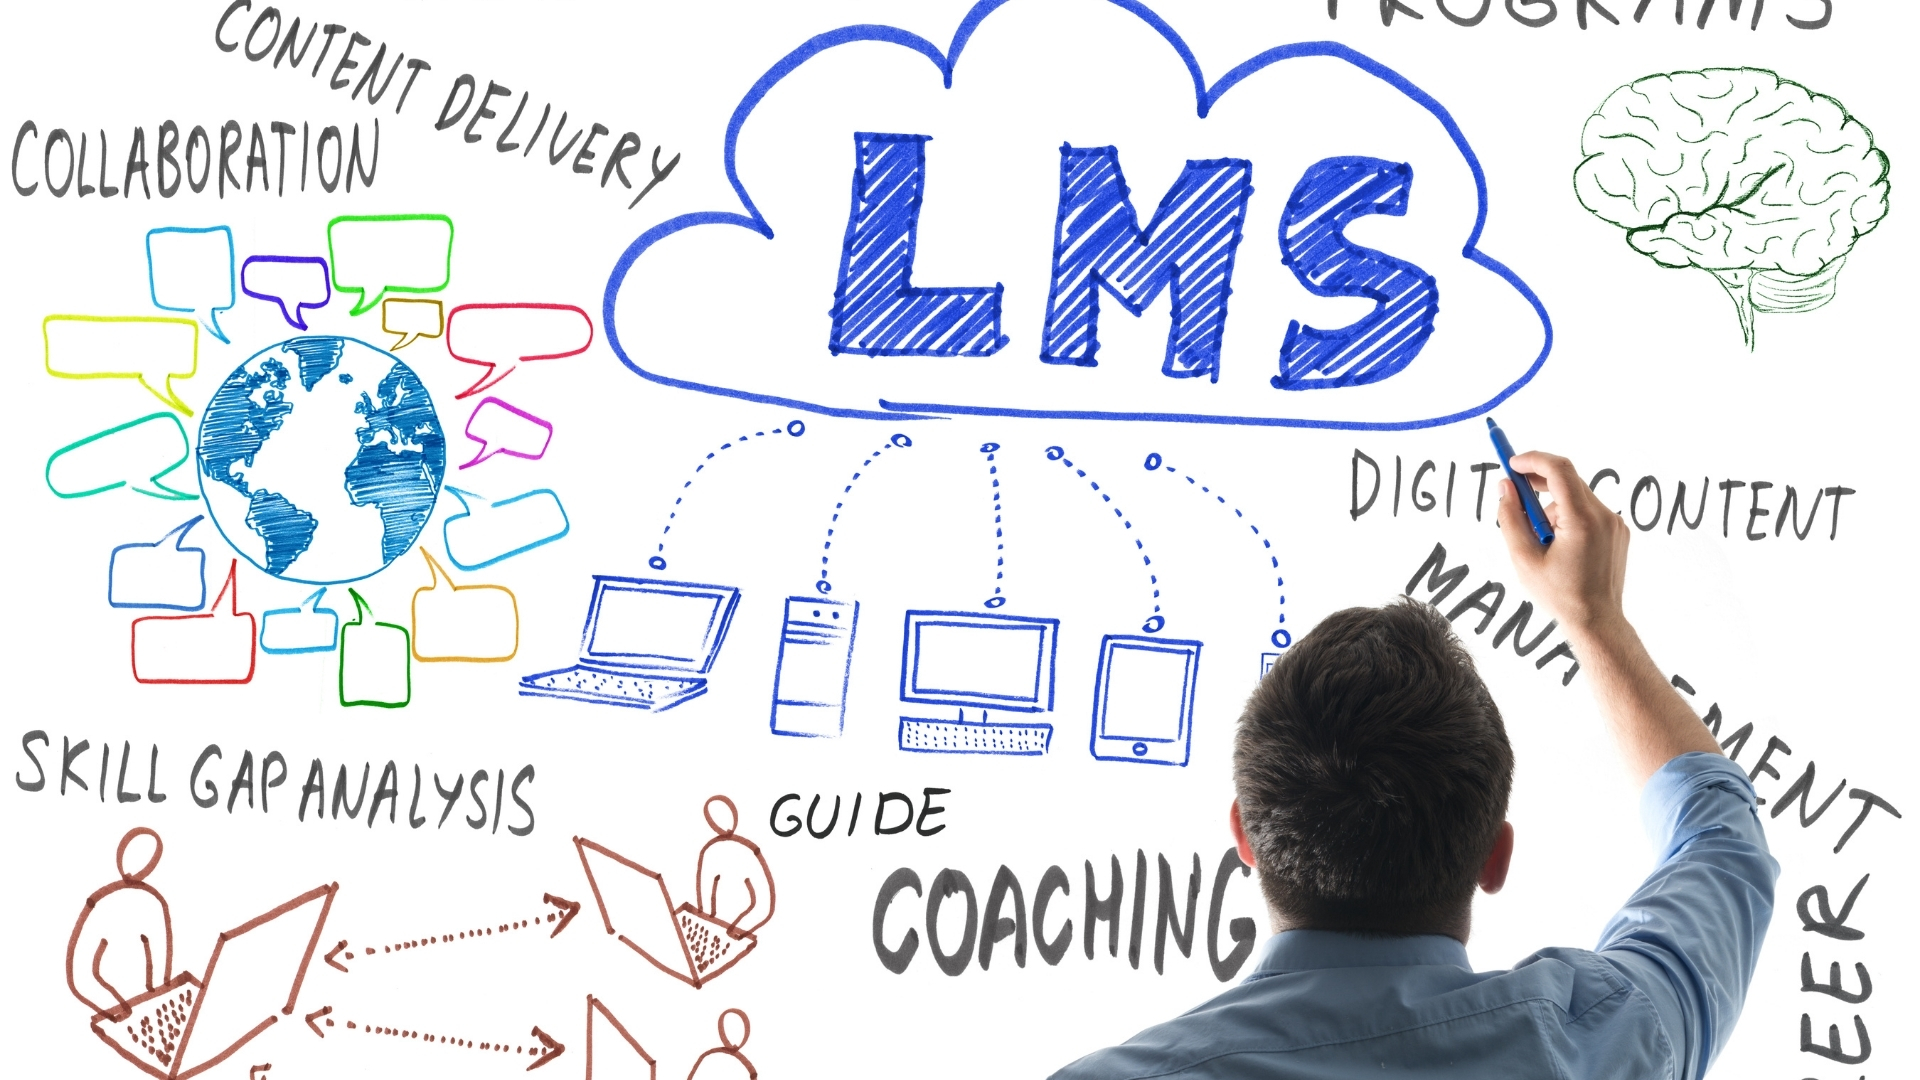 title image - Top 10 questions to ask when choosing an LMS